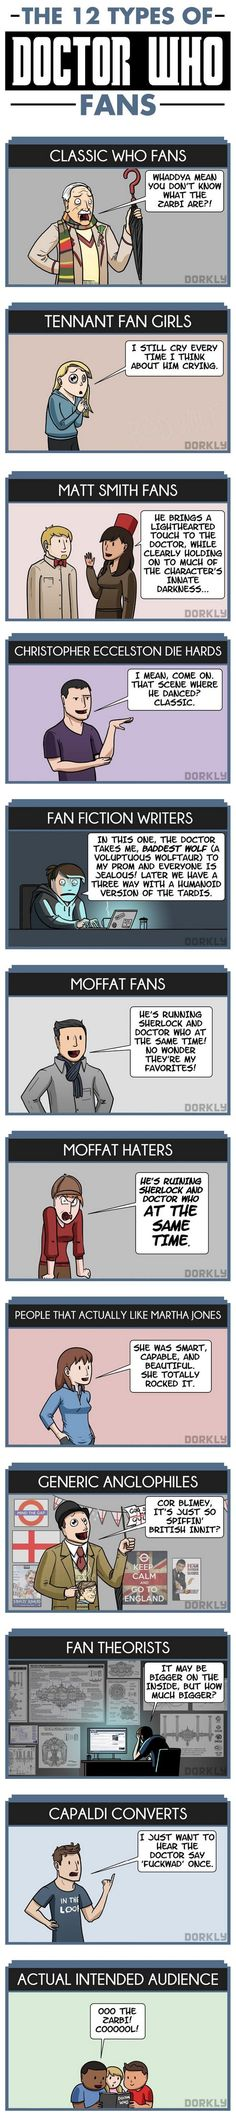 doctor who fans